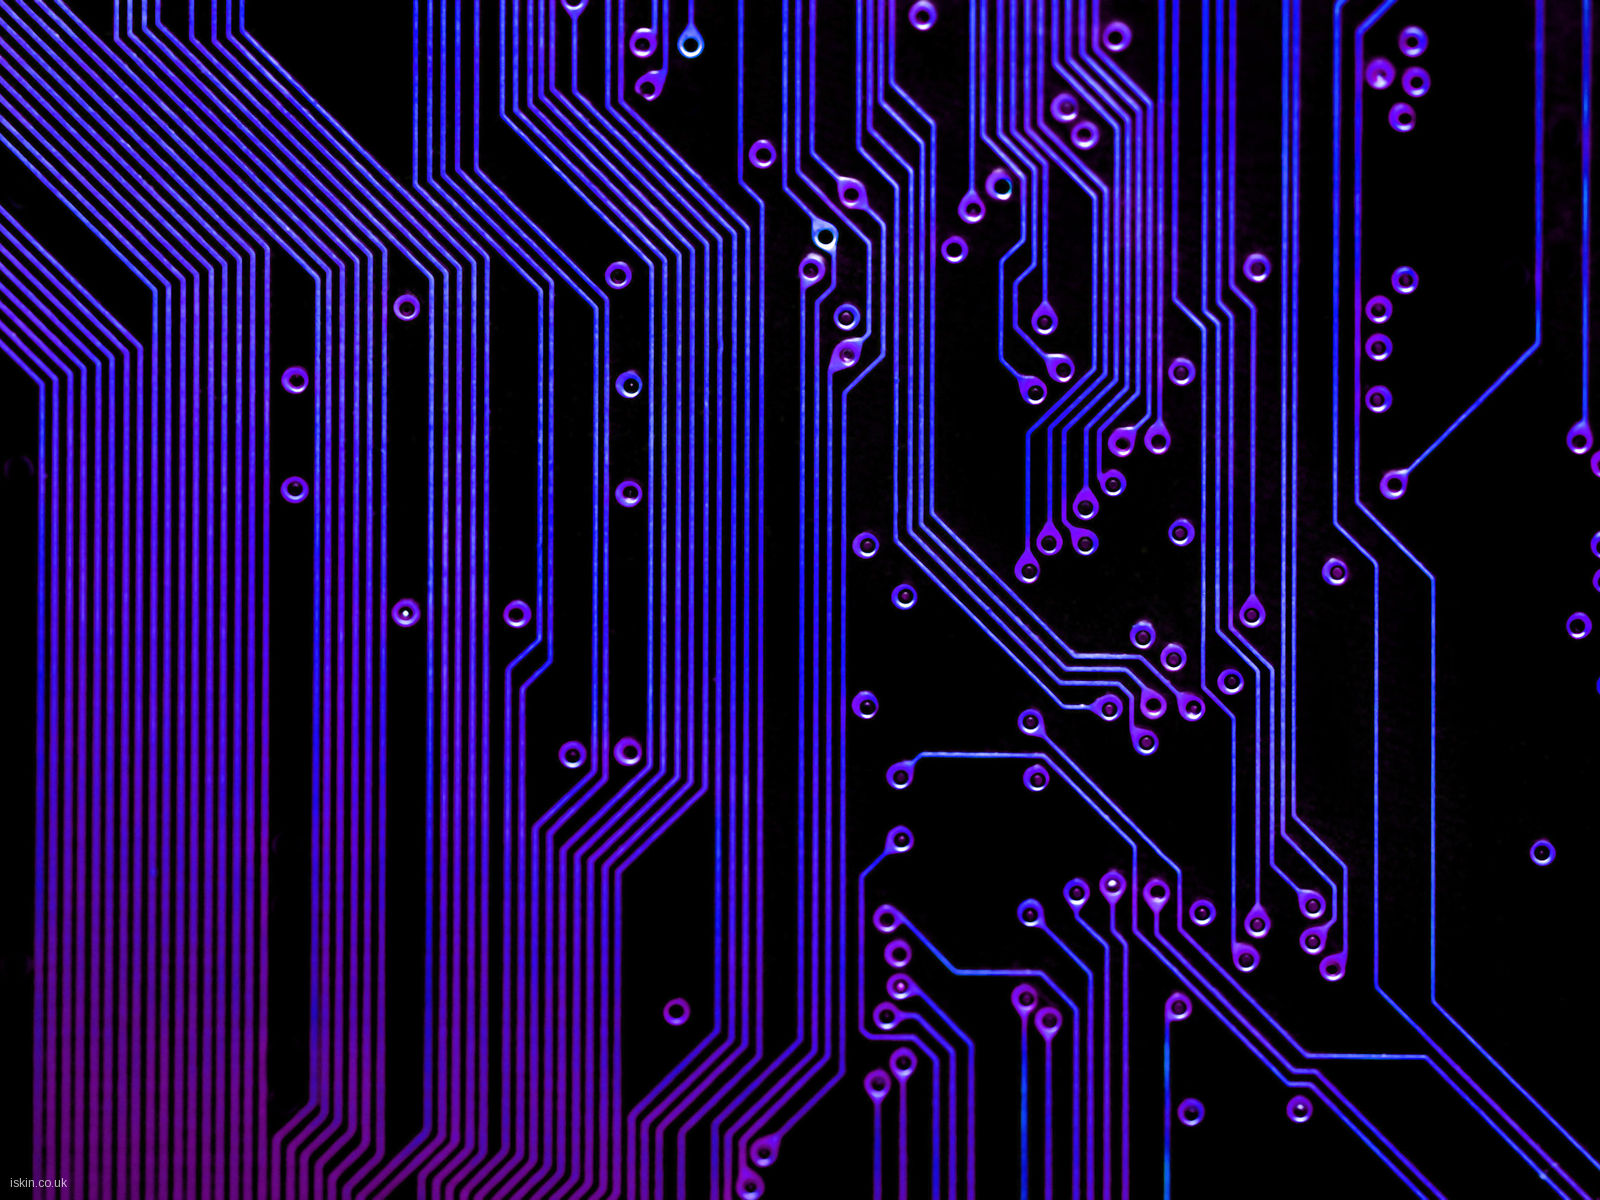 Circuit Board Wallpaper Wallpapersafari Simple Design Galleryhipcom The Hippest Galleries Printed Desktop Iskincouk 1600x1200